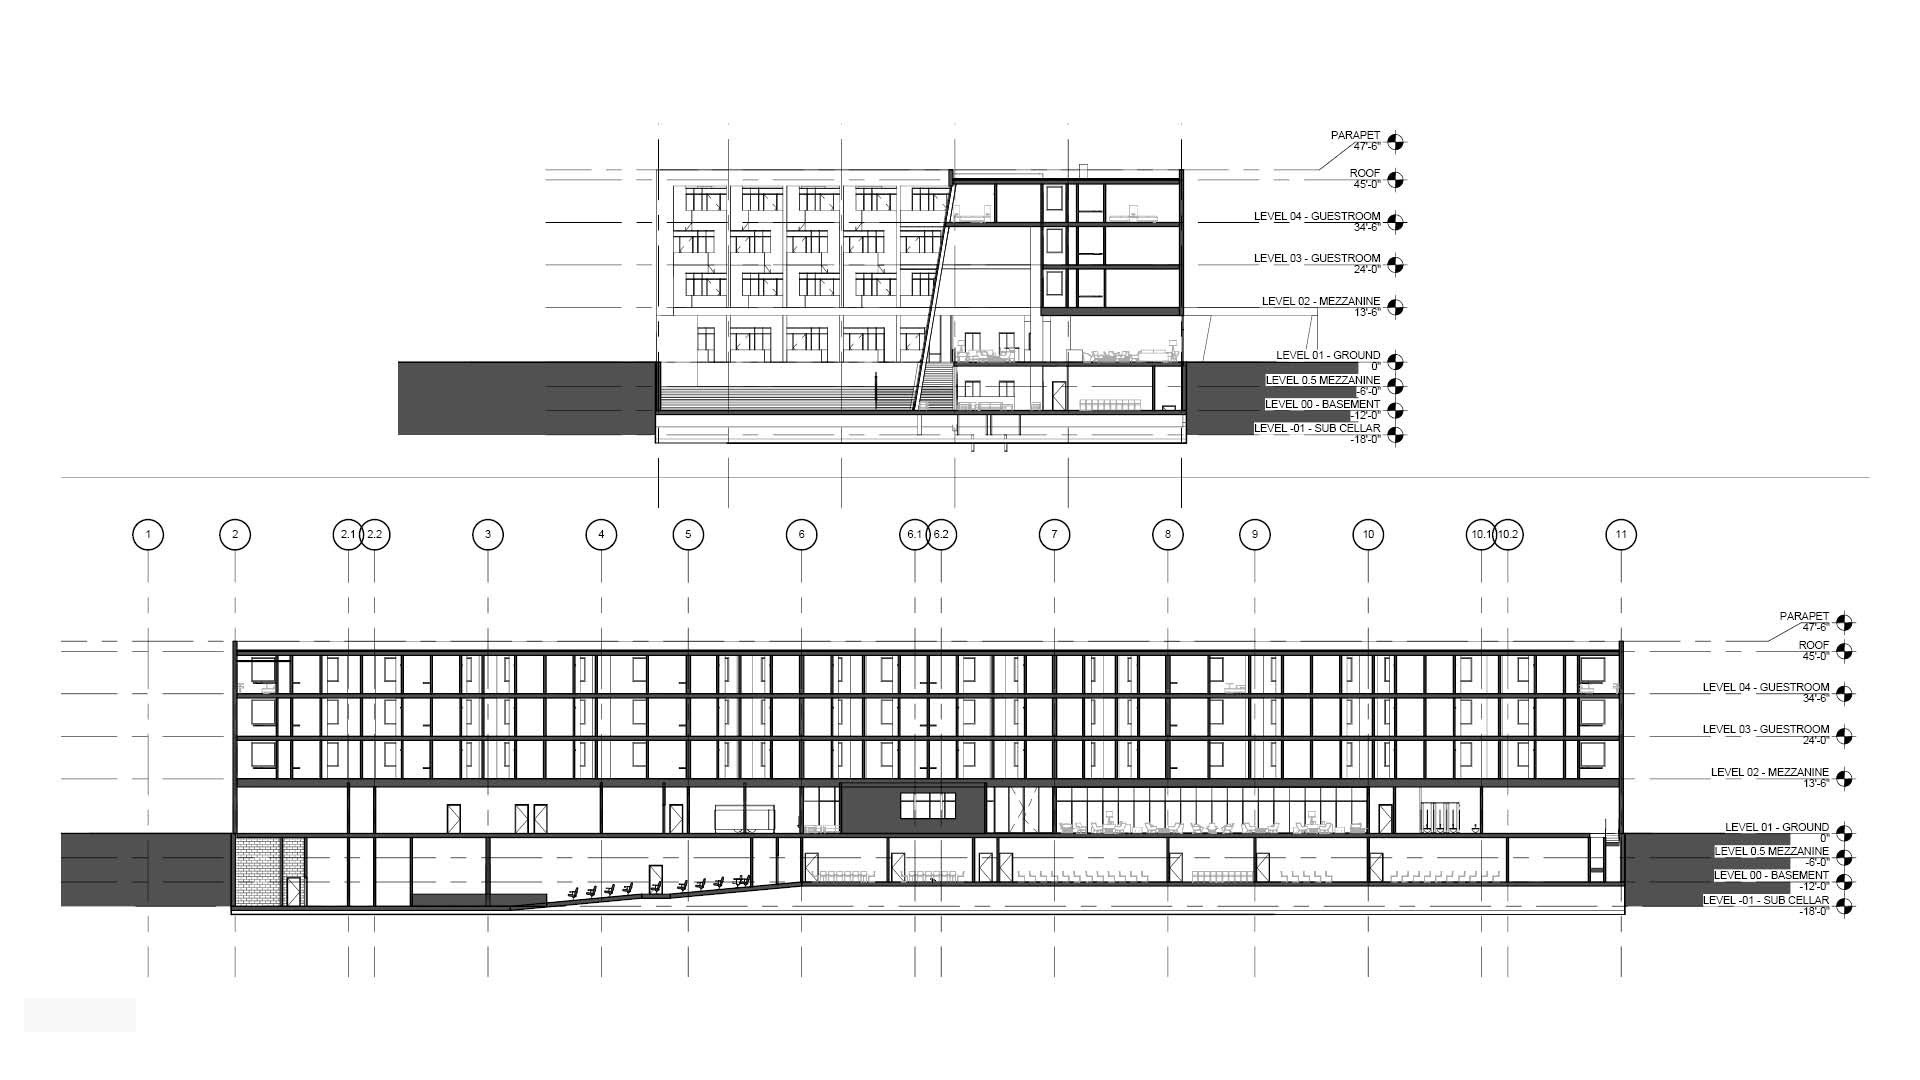 Levels diagram of the Jericho Plaza Hotel project in Jericho, New York designed by the architecture studio Danny Forster & Architecture